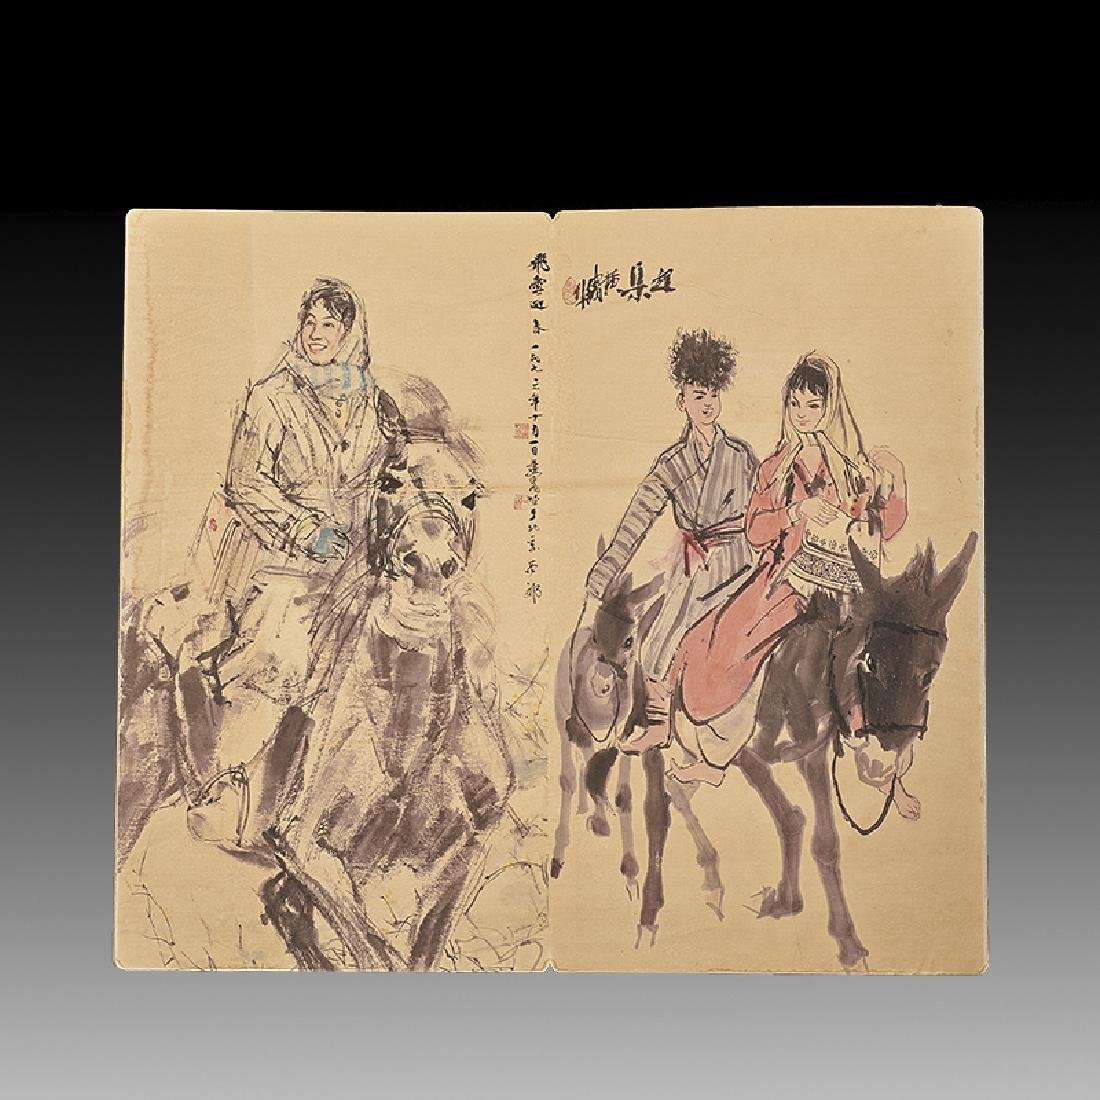 Rare chinese painting album by Hang zhou (1925-1997) - 3